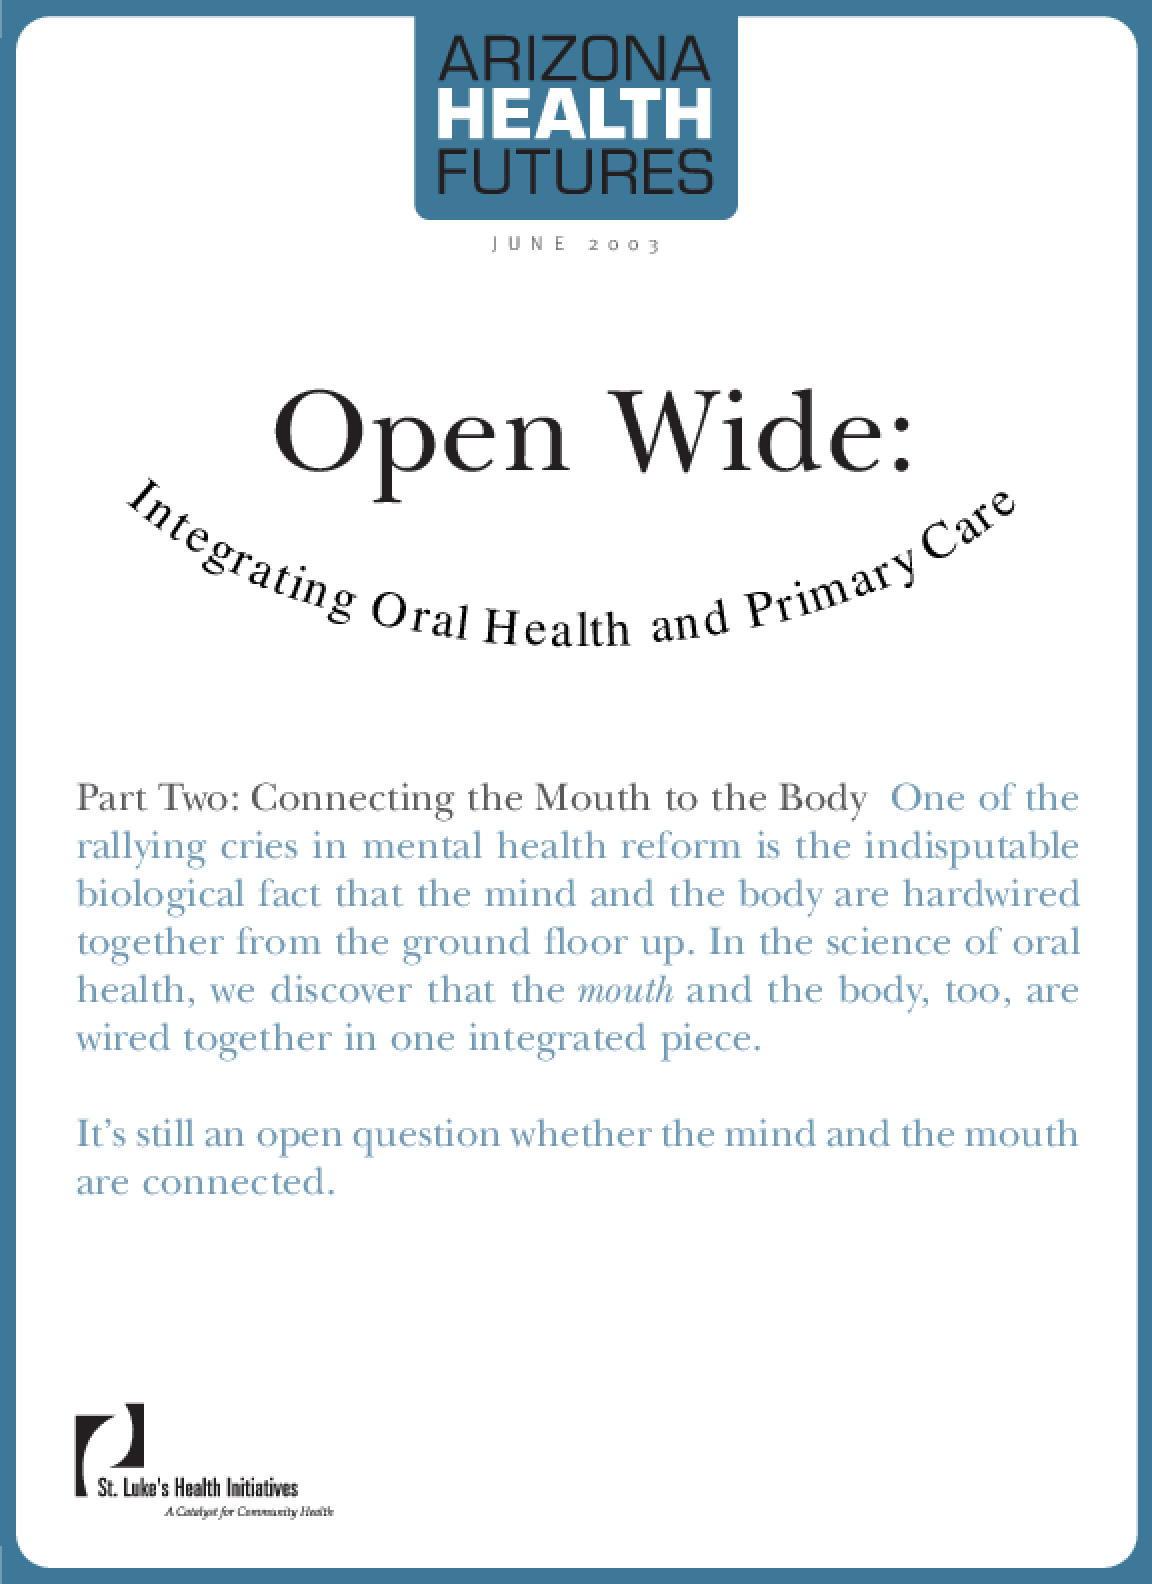 Open Wide: Integrating Oral Health and Primary Care